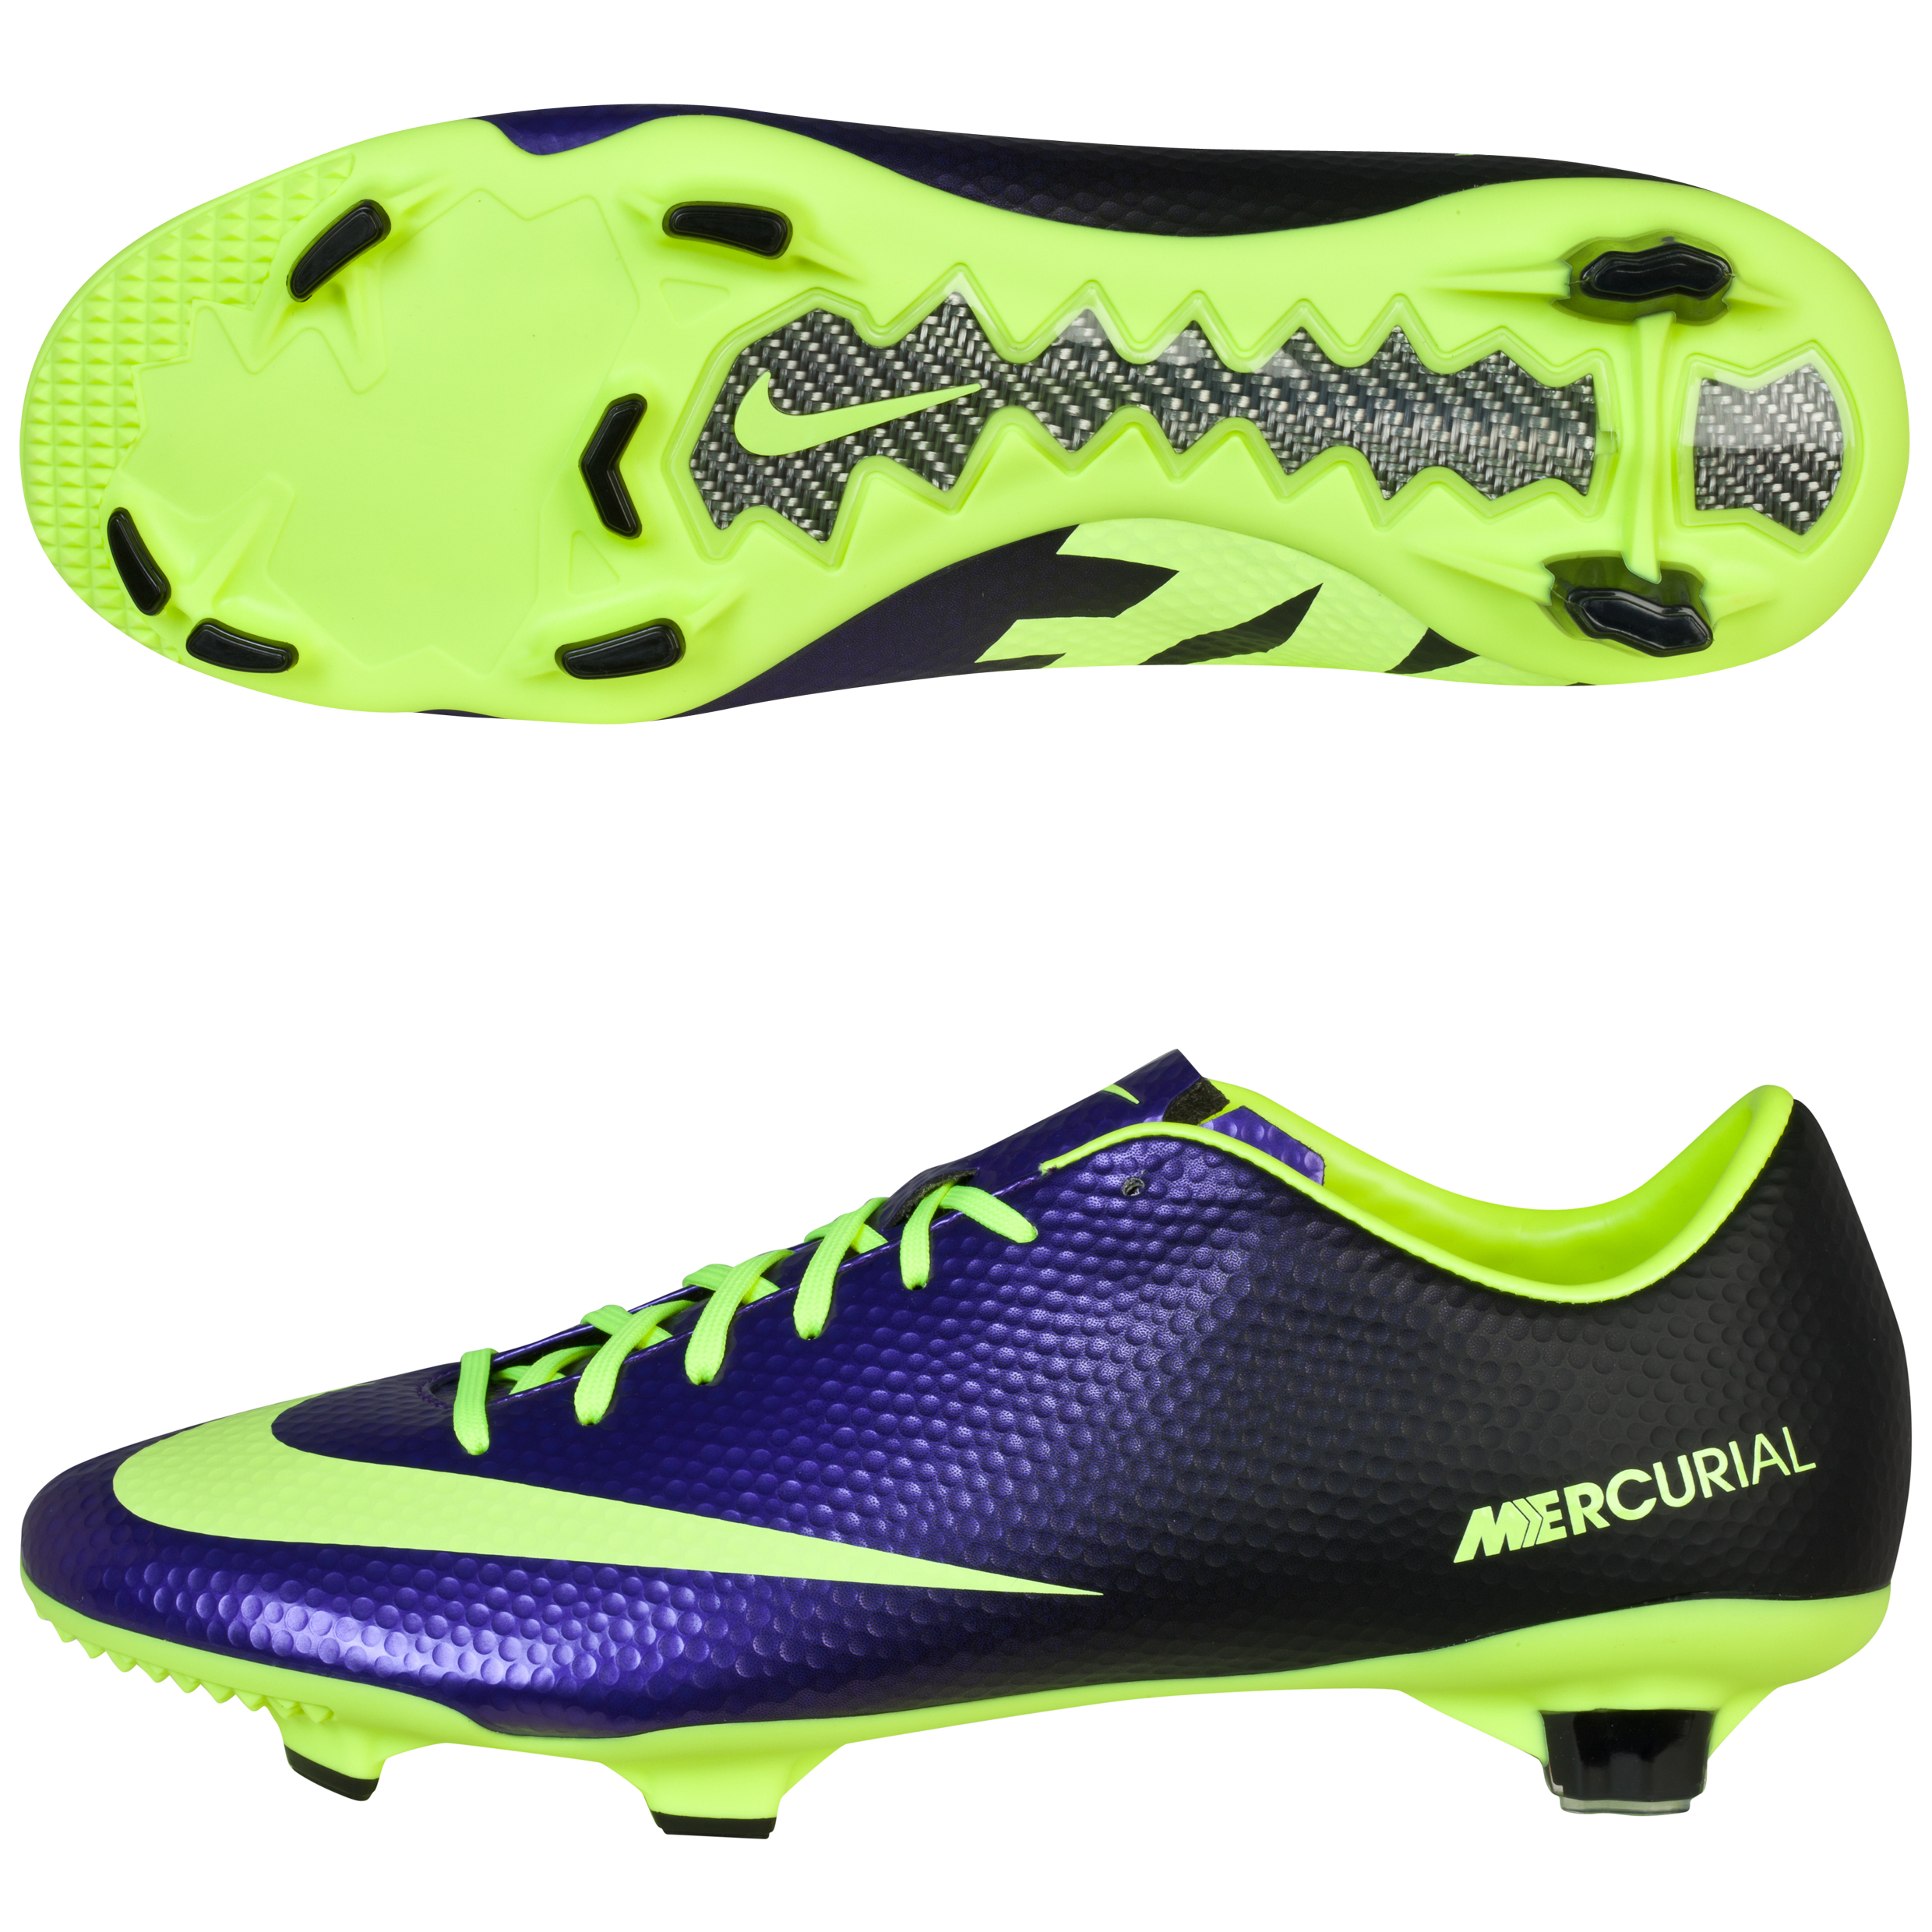 Nike Mercurial Veloce Firm Ground Football Boots -Electro Purple/Volt/Black Purple